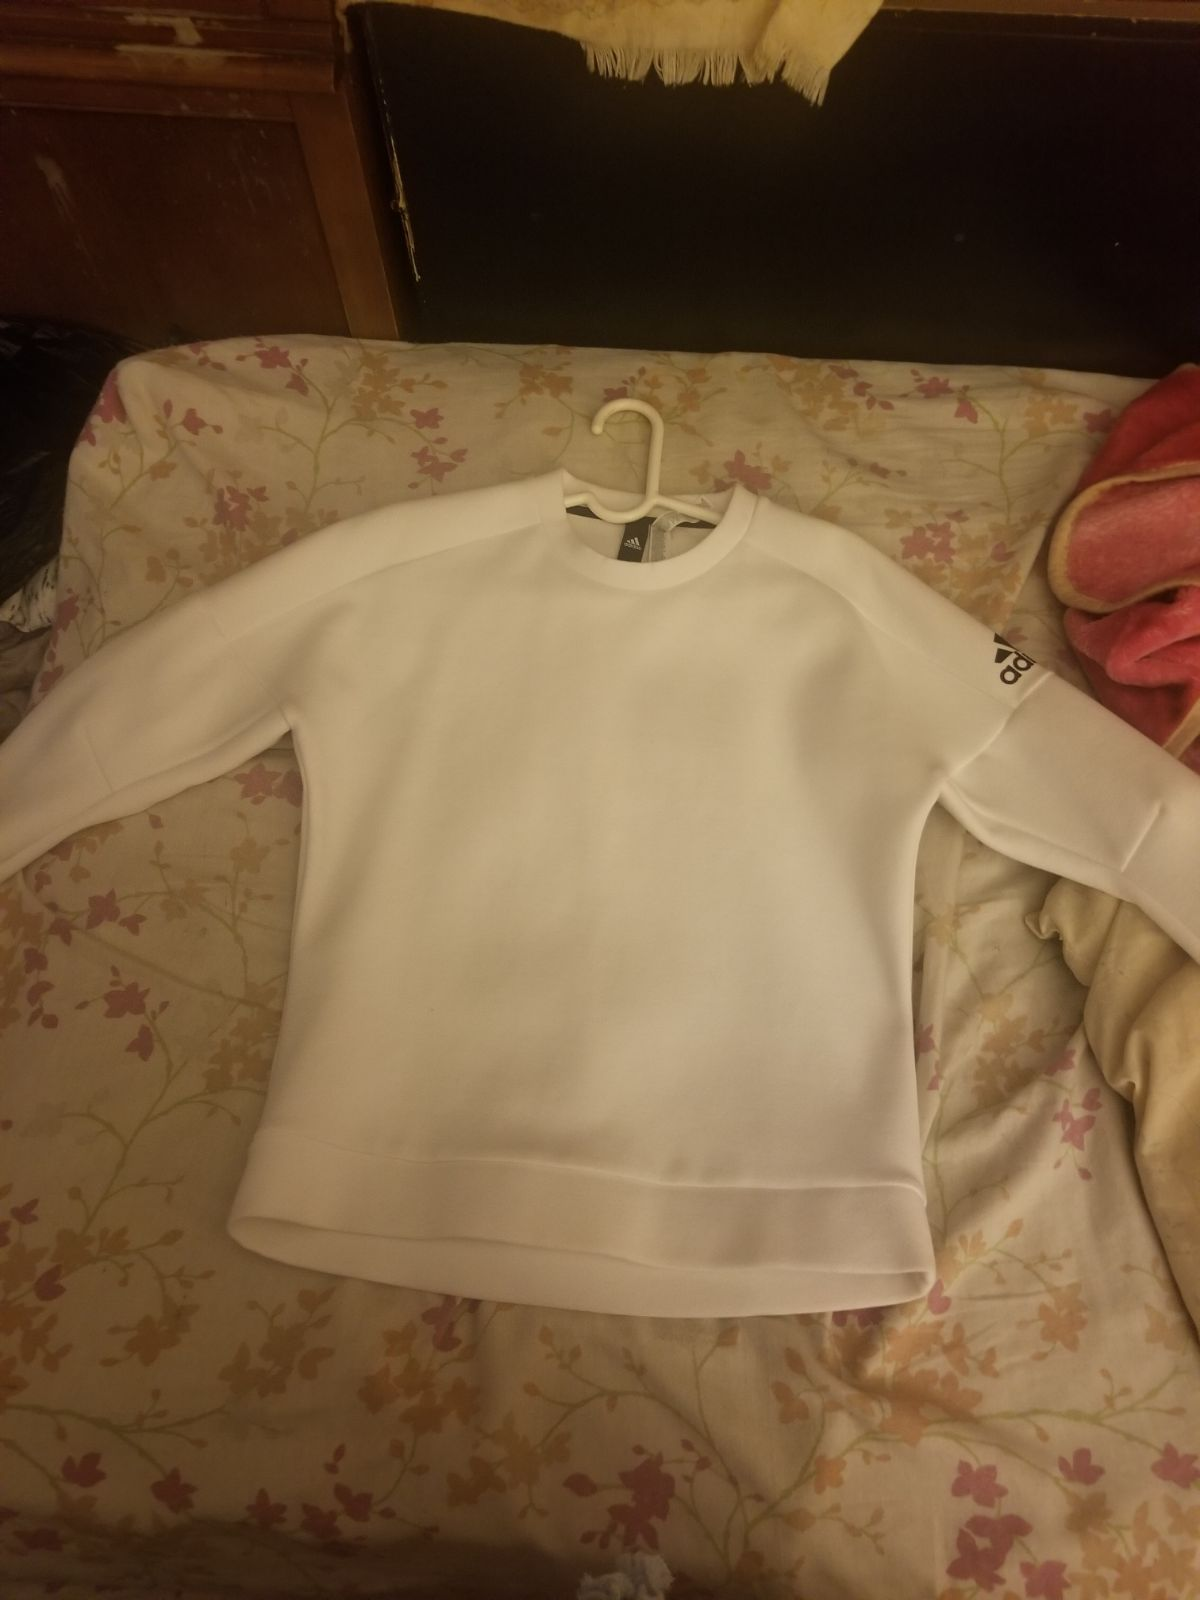 All White Adidas Sweater Tight Fit Good For The Winter Original Price 50 Or Up Adidas Sweatshirt Women White Adidas Sweater Sweatshirts Women [ 1600 x 1200 Pixel ]